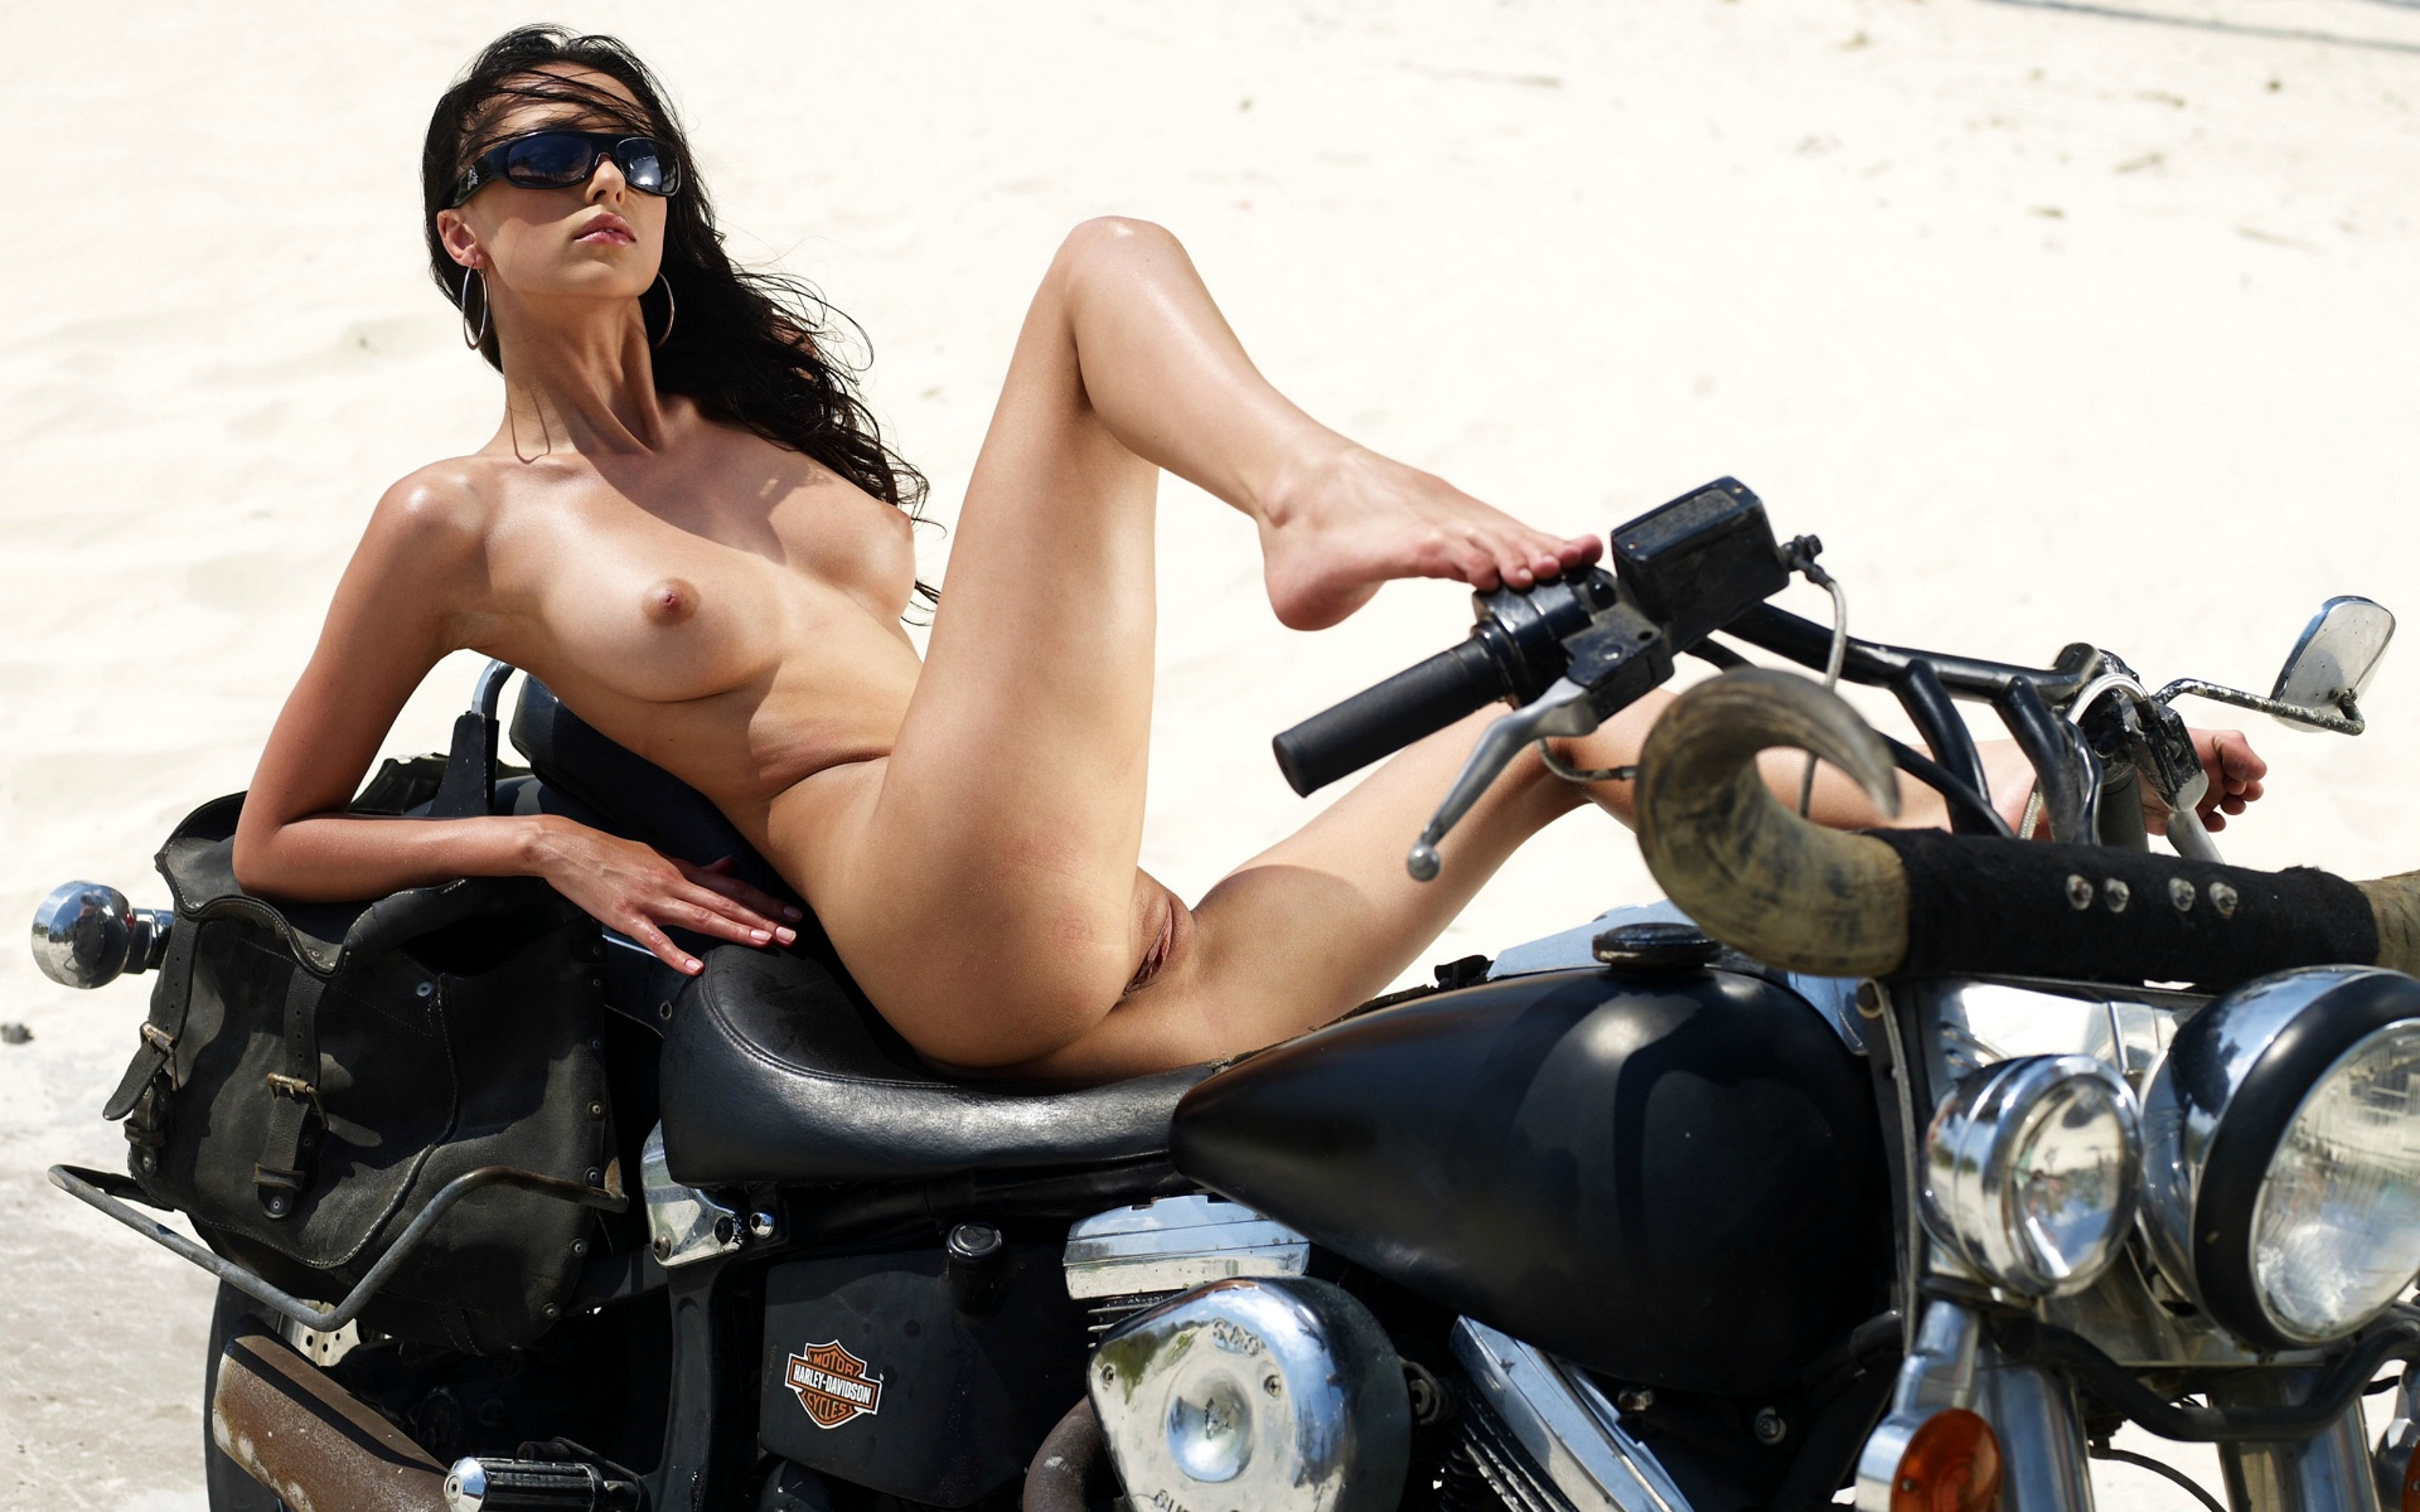 Something is. Nude babes and dirtbikes entertaining message